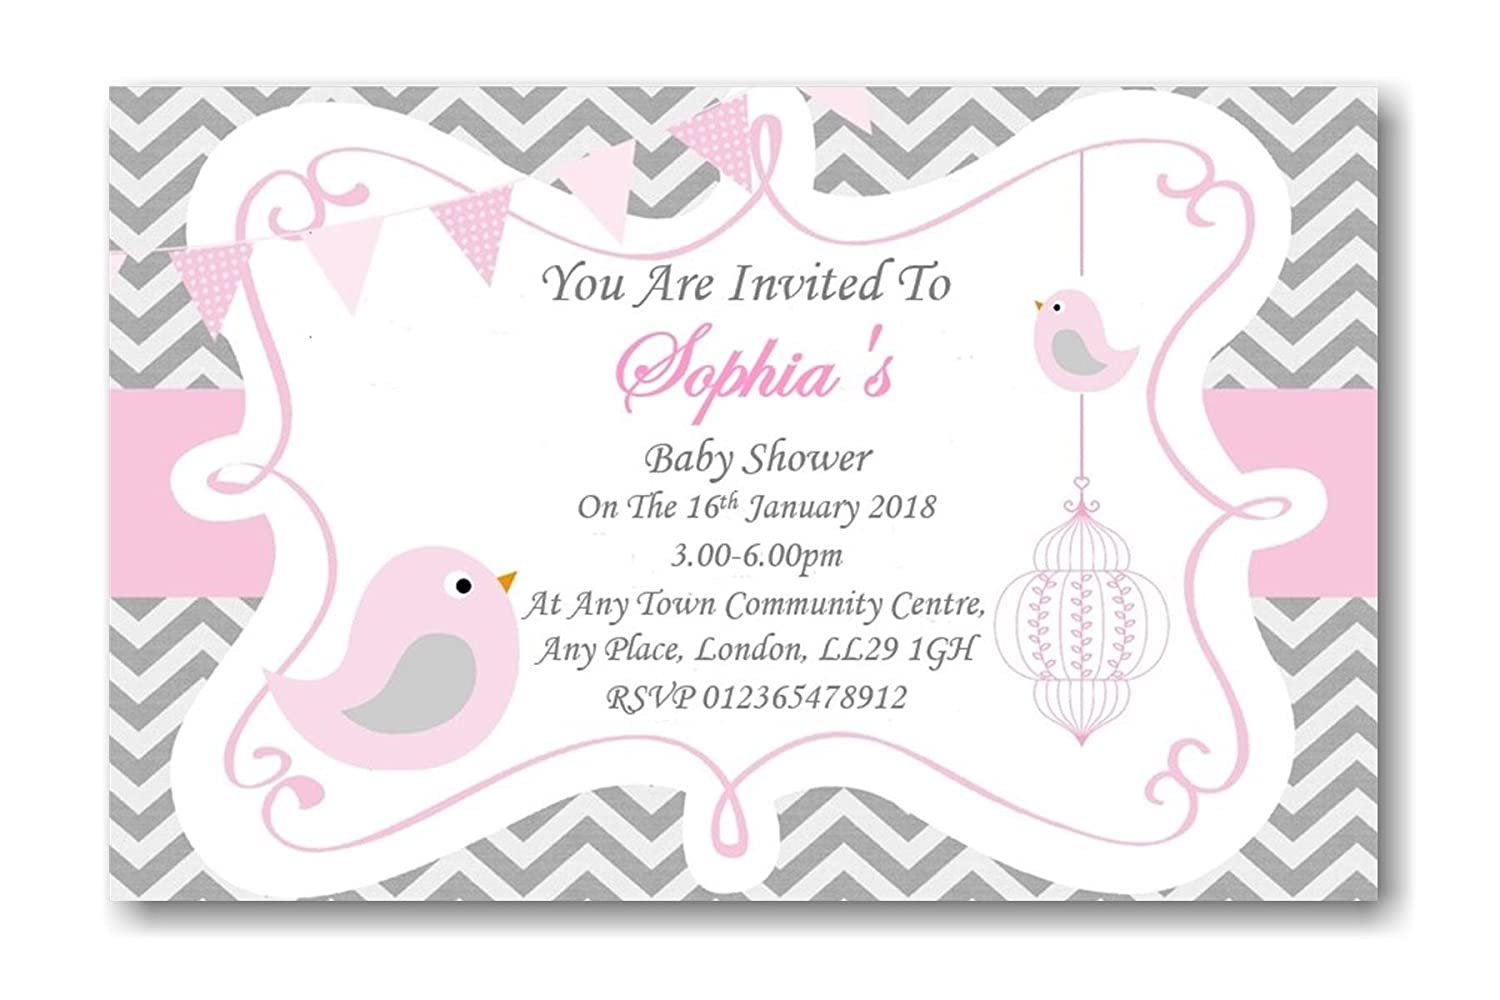 40 Personalised Baby Shower Invitations / Invites With Envelopes Pink grey FREE P&P Bespoke Candy Delights